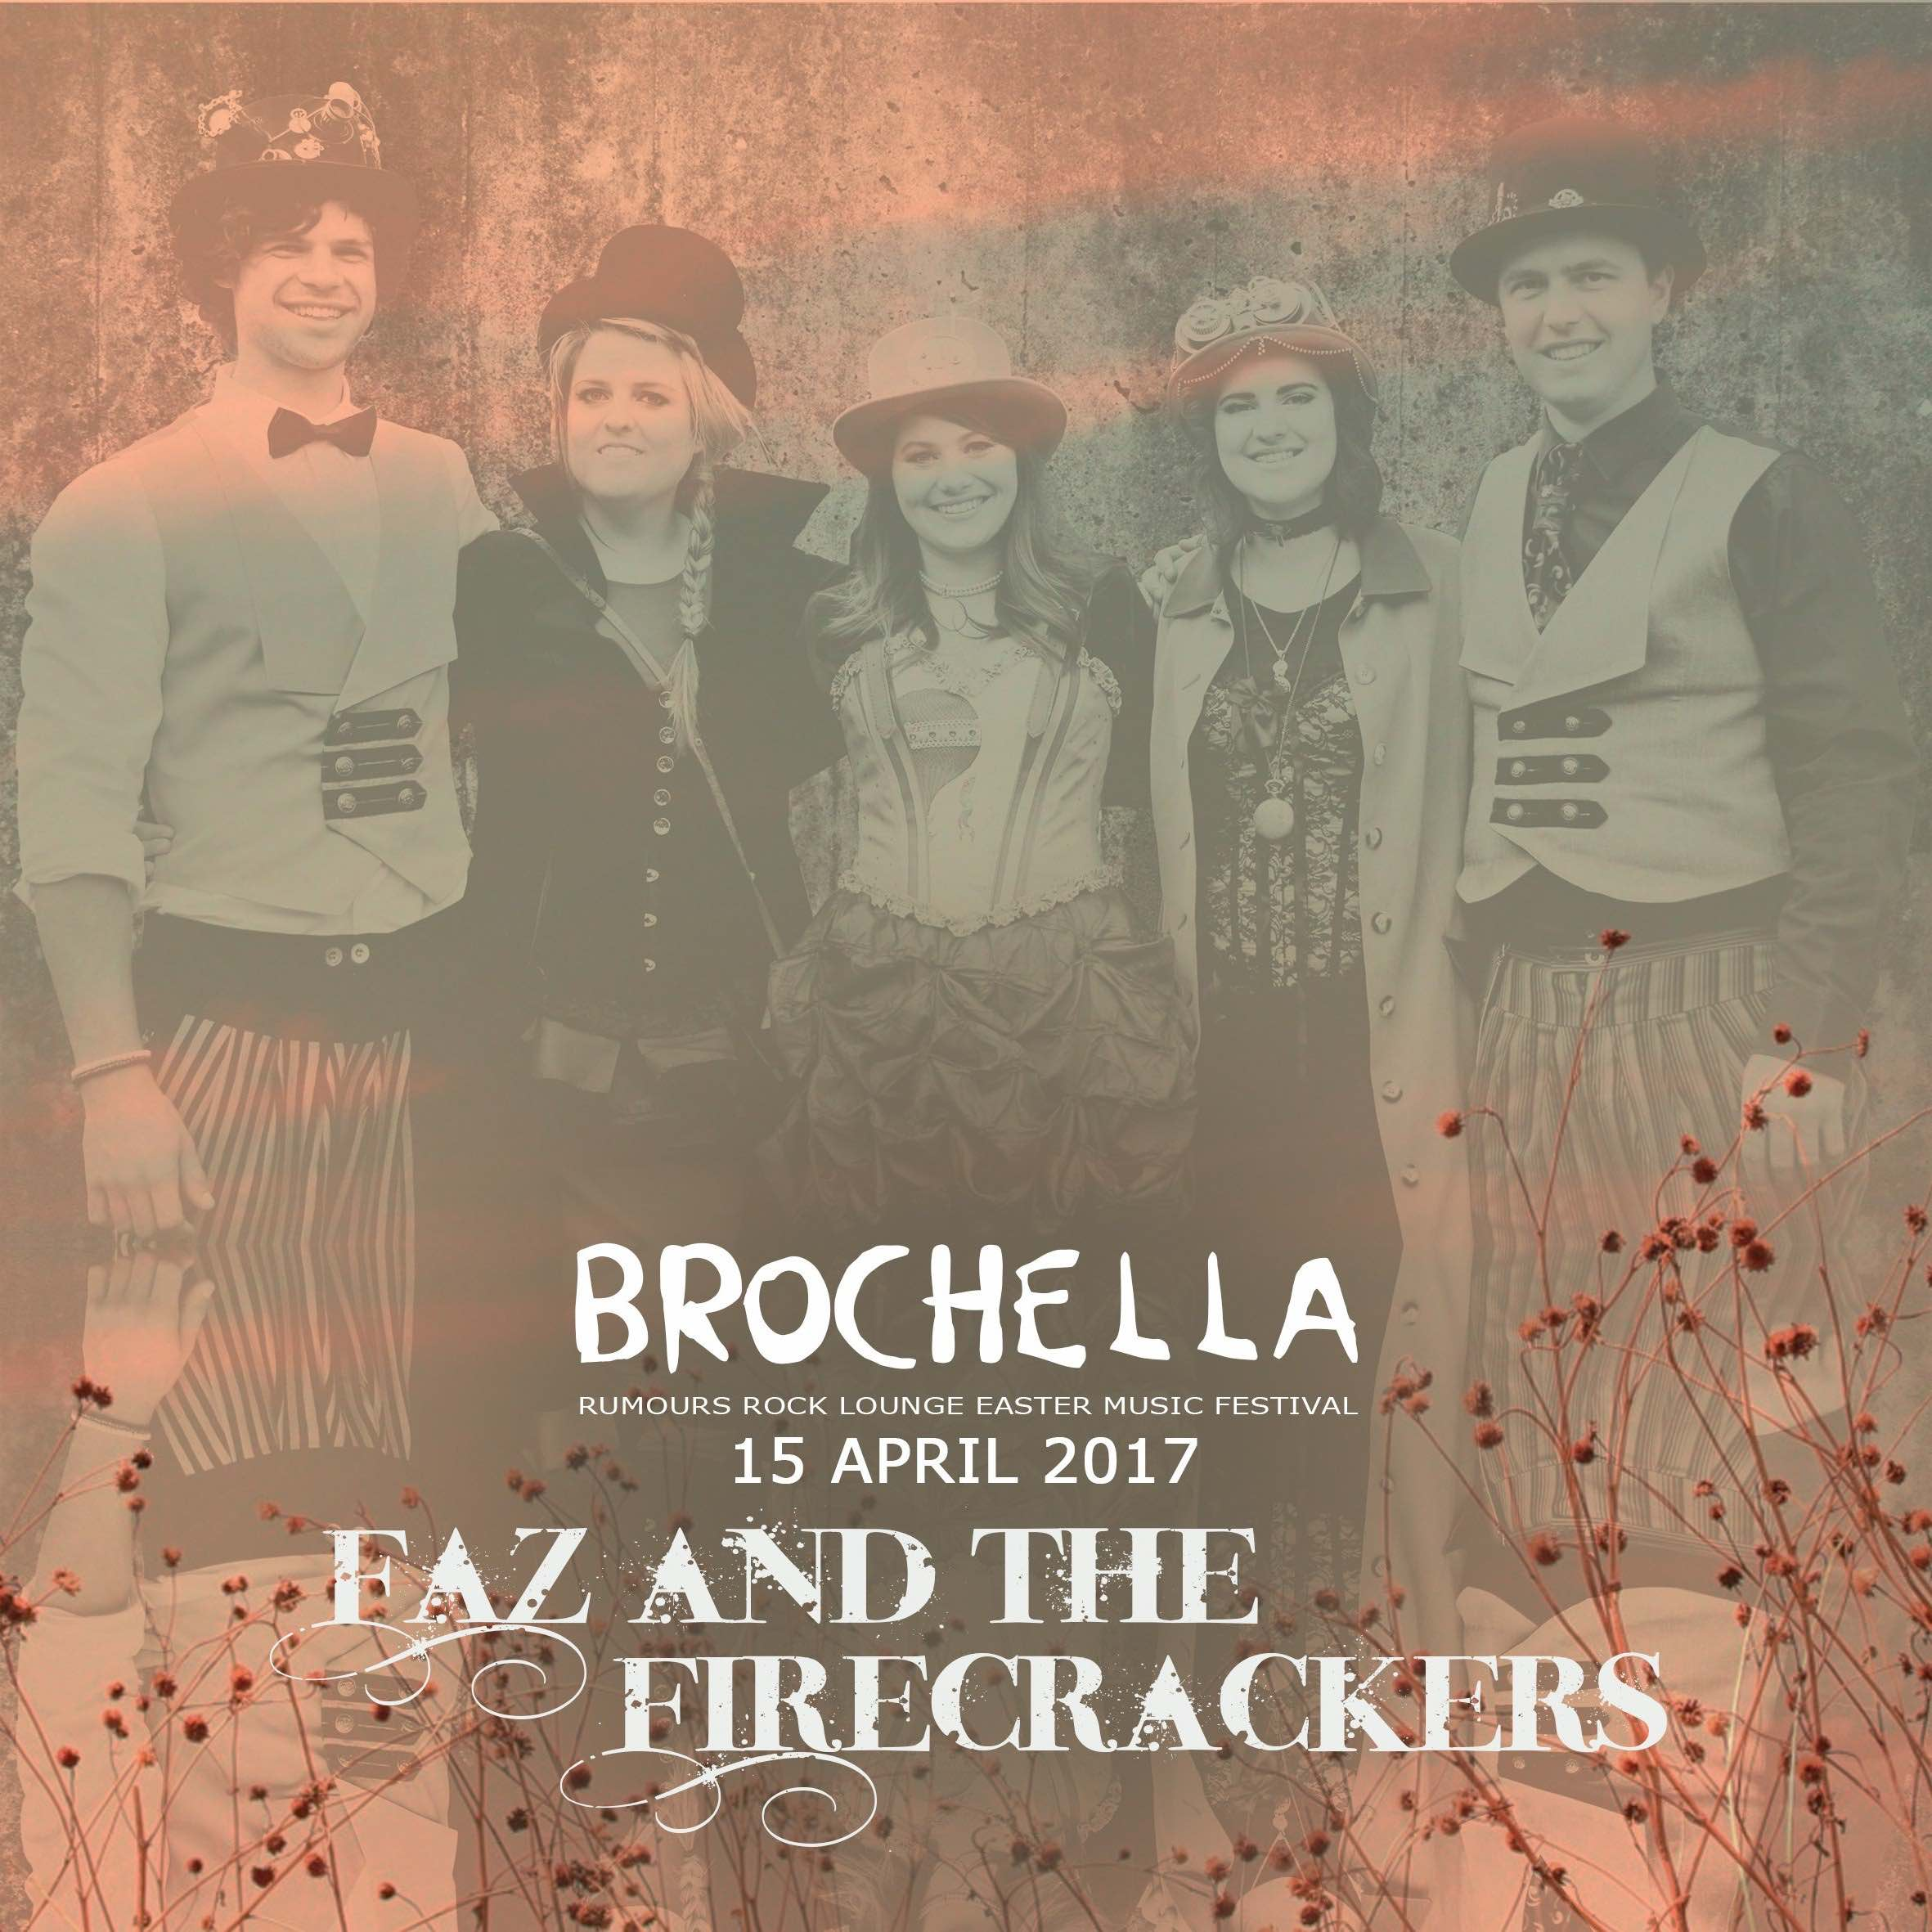 We interview Faz and the Firecrackers about Brochella Festival